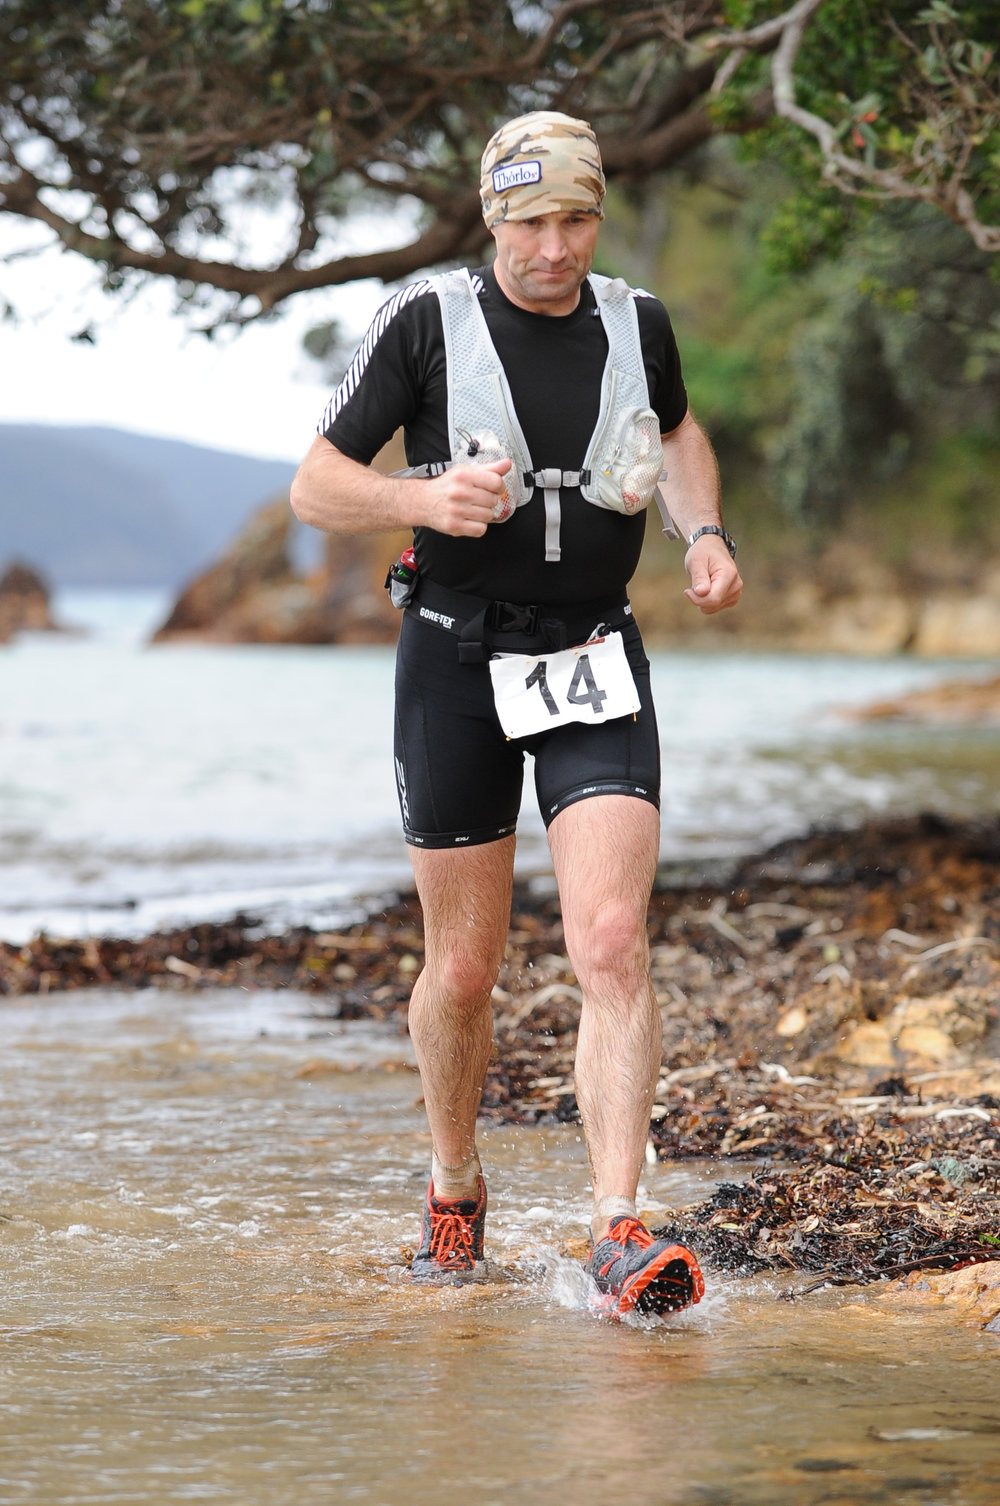 Russell Maylin running the Kauri Ultra Marathon.